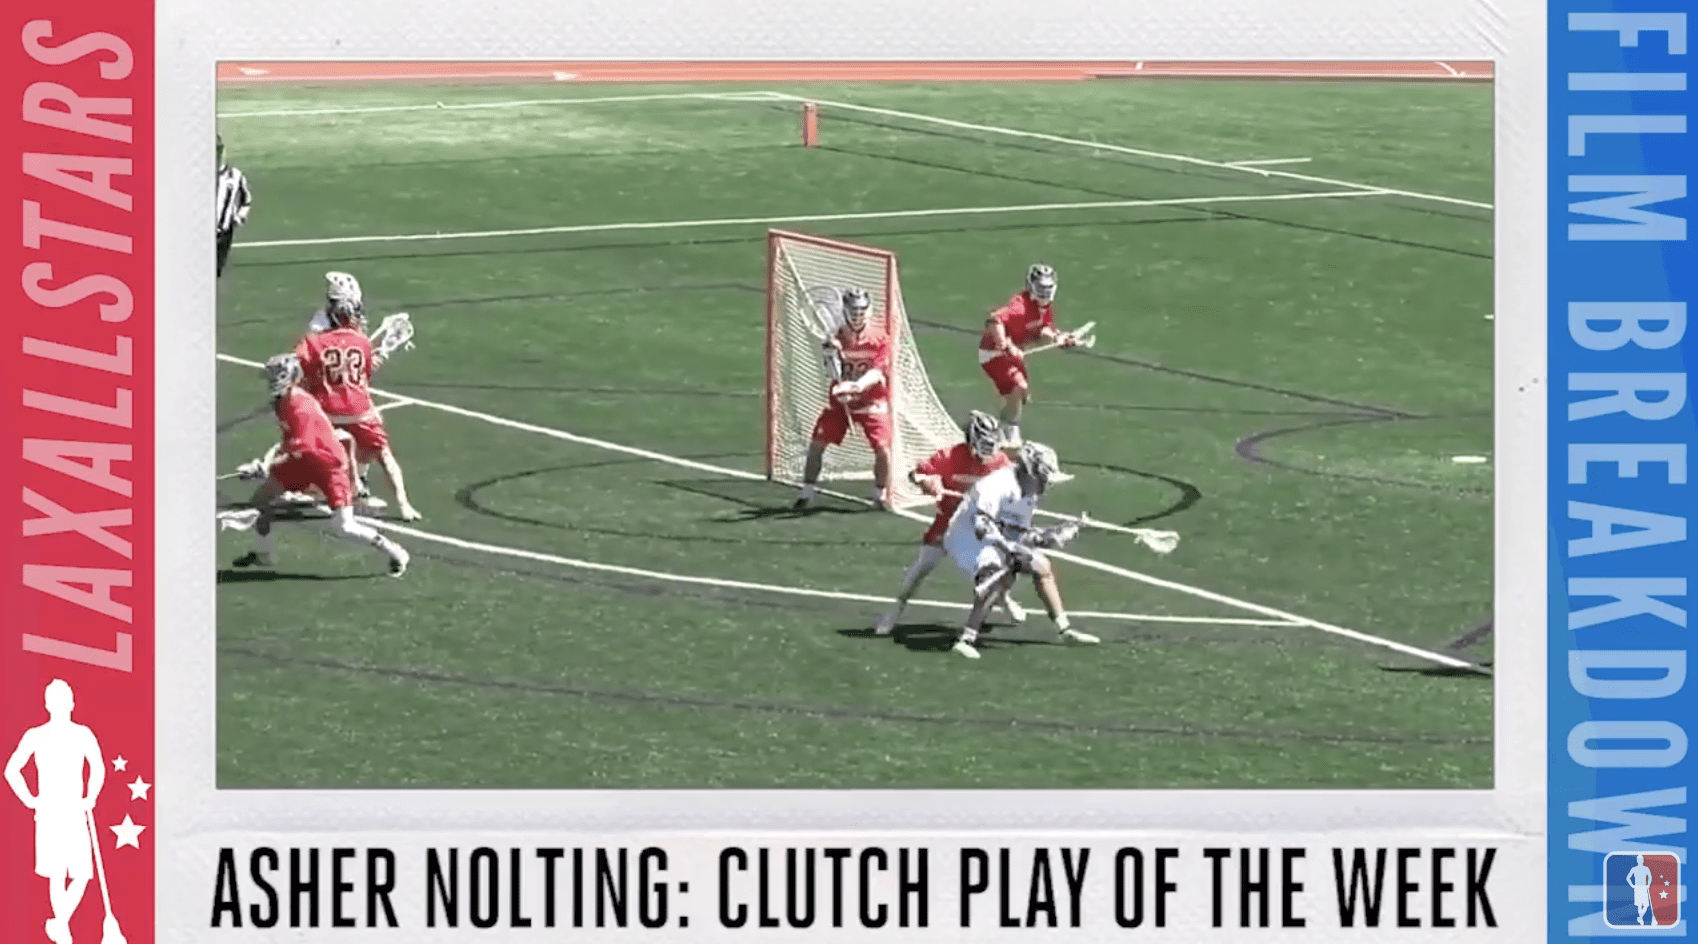 asher nolting clutch play of the week